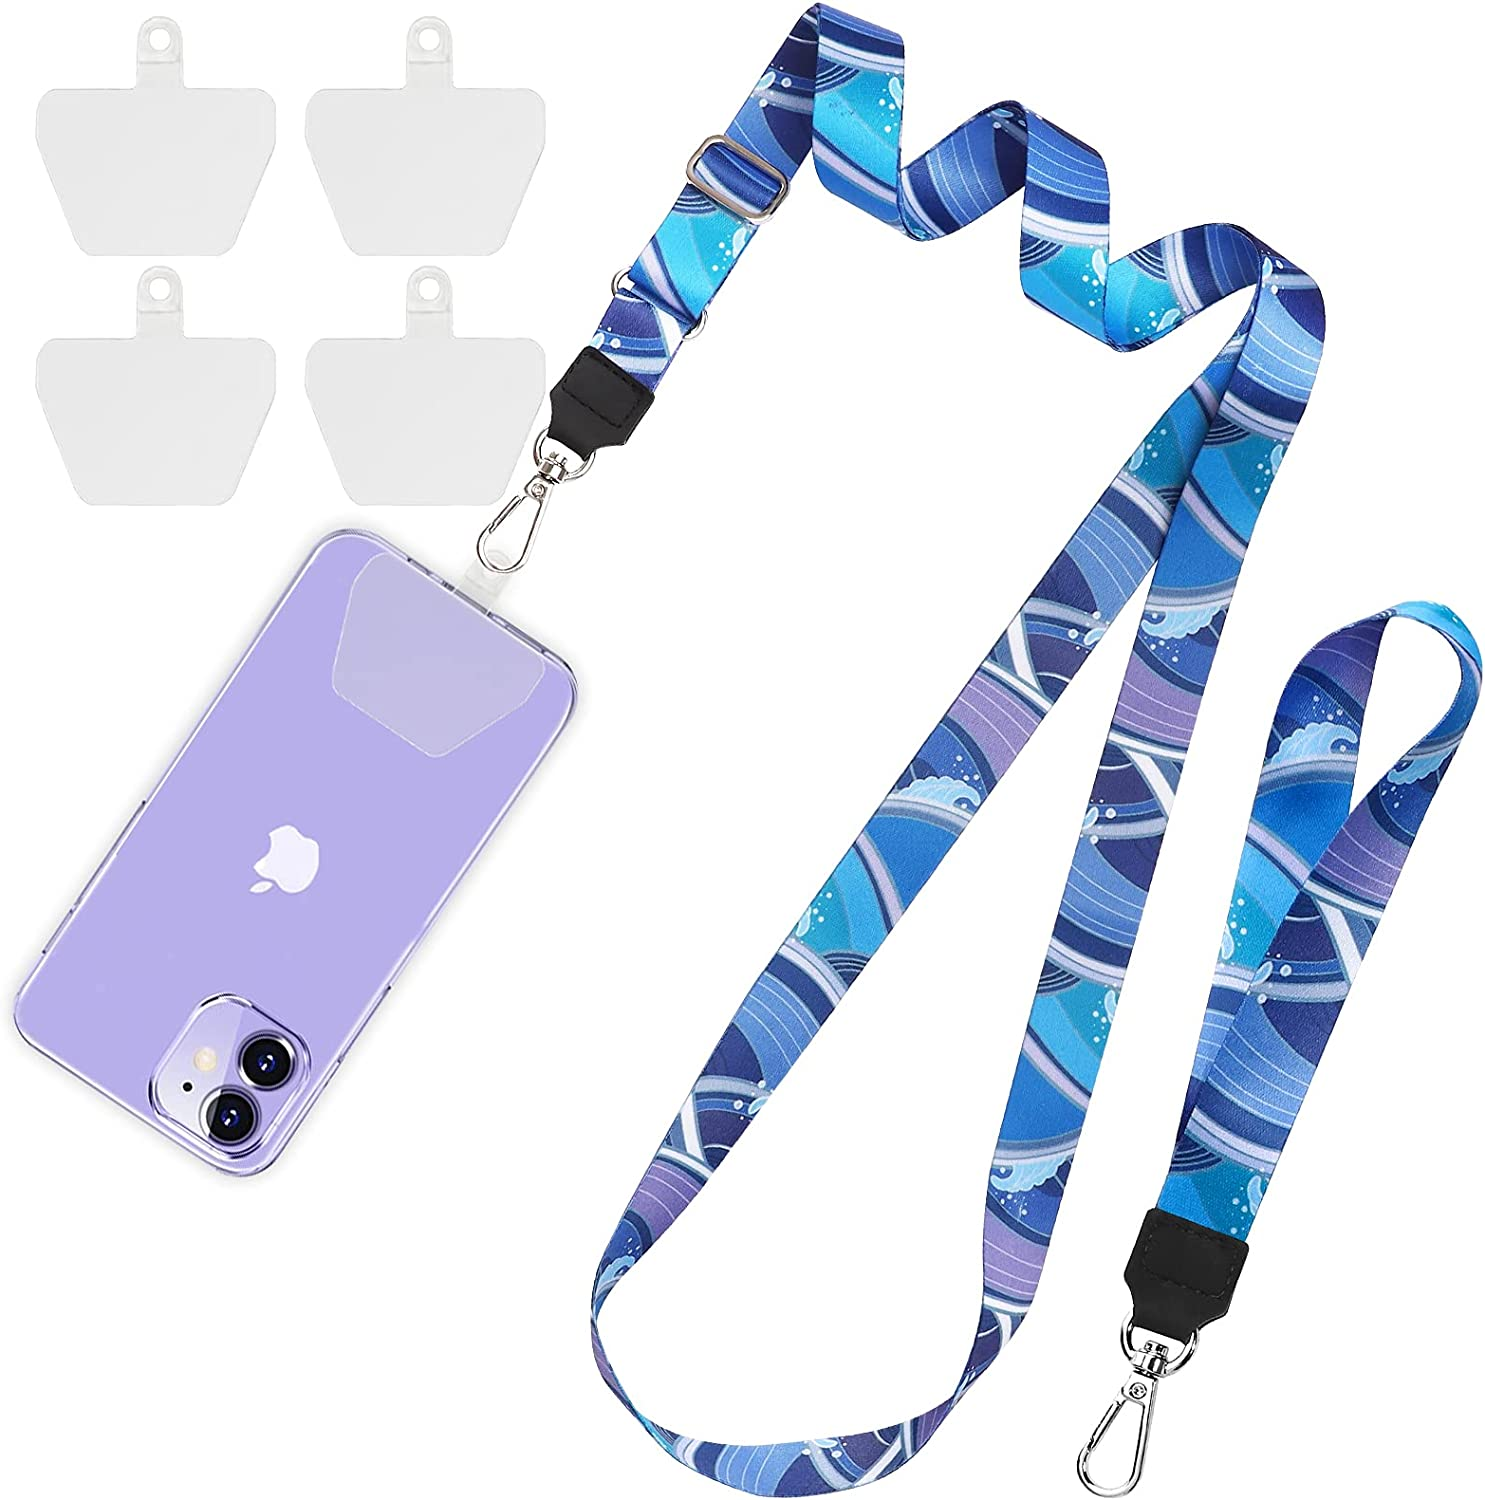 SHANSHUI Phone Lanyard Neck Crossbody Wrist Strap With 4 Durable Clear Patches